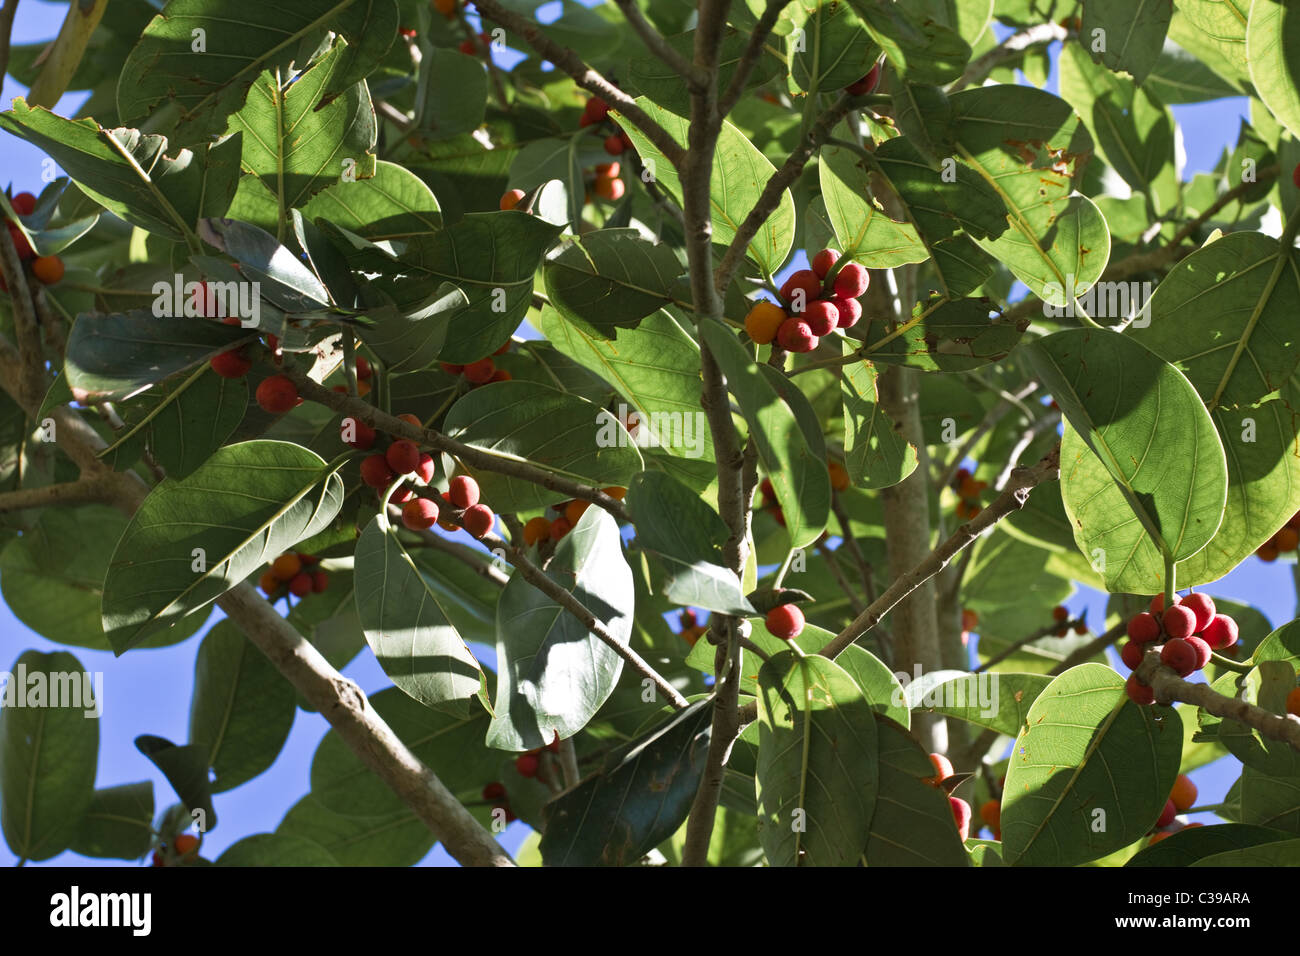 Lofty fig tree leaves and figs - Stock Image